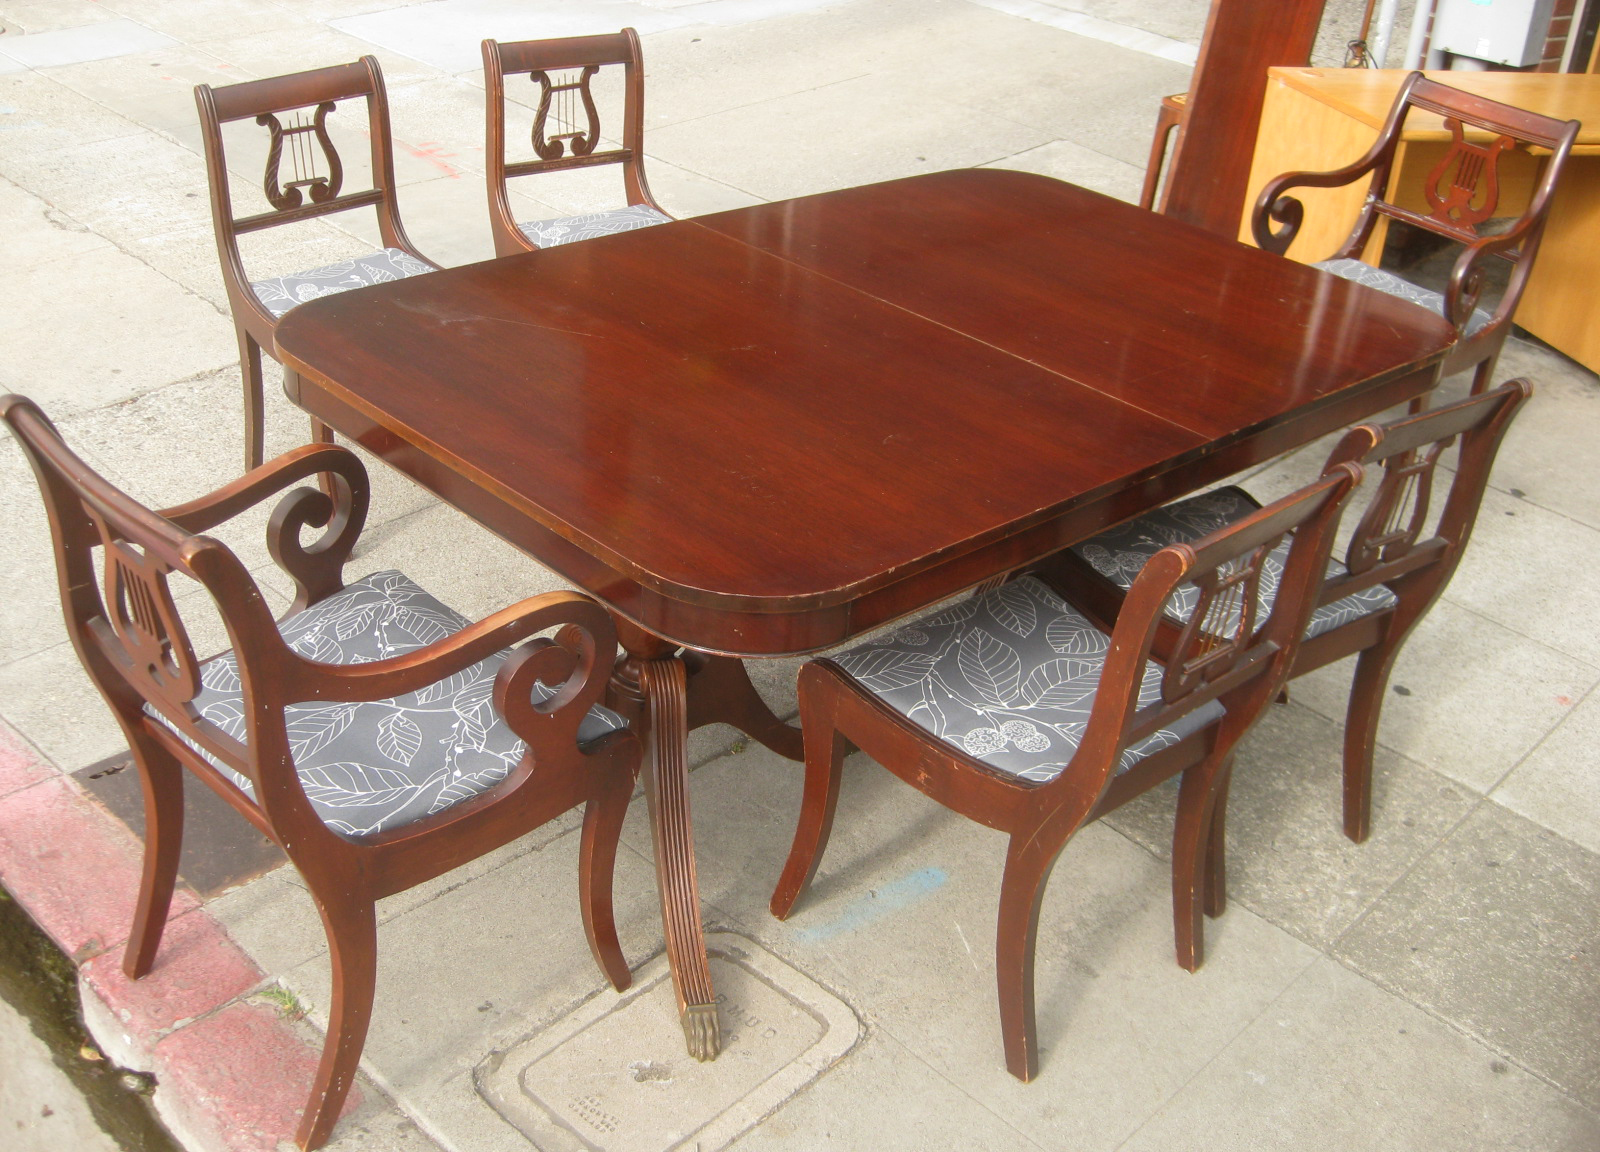 Sold Duncan Phyfe Mahogany Dining Set 200 Includes Table